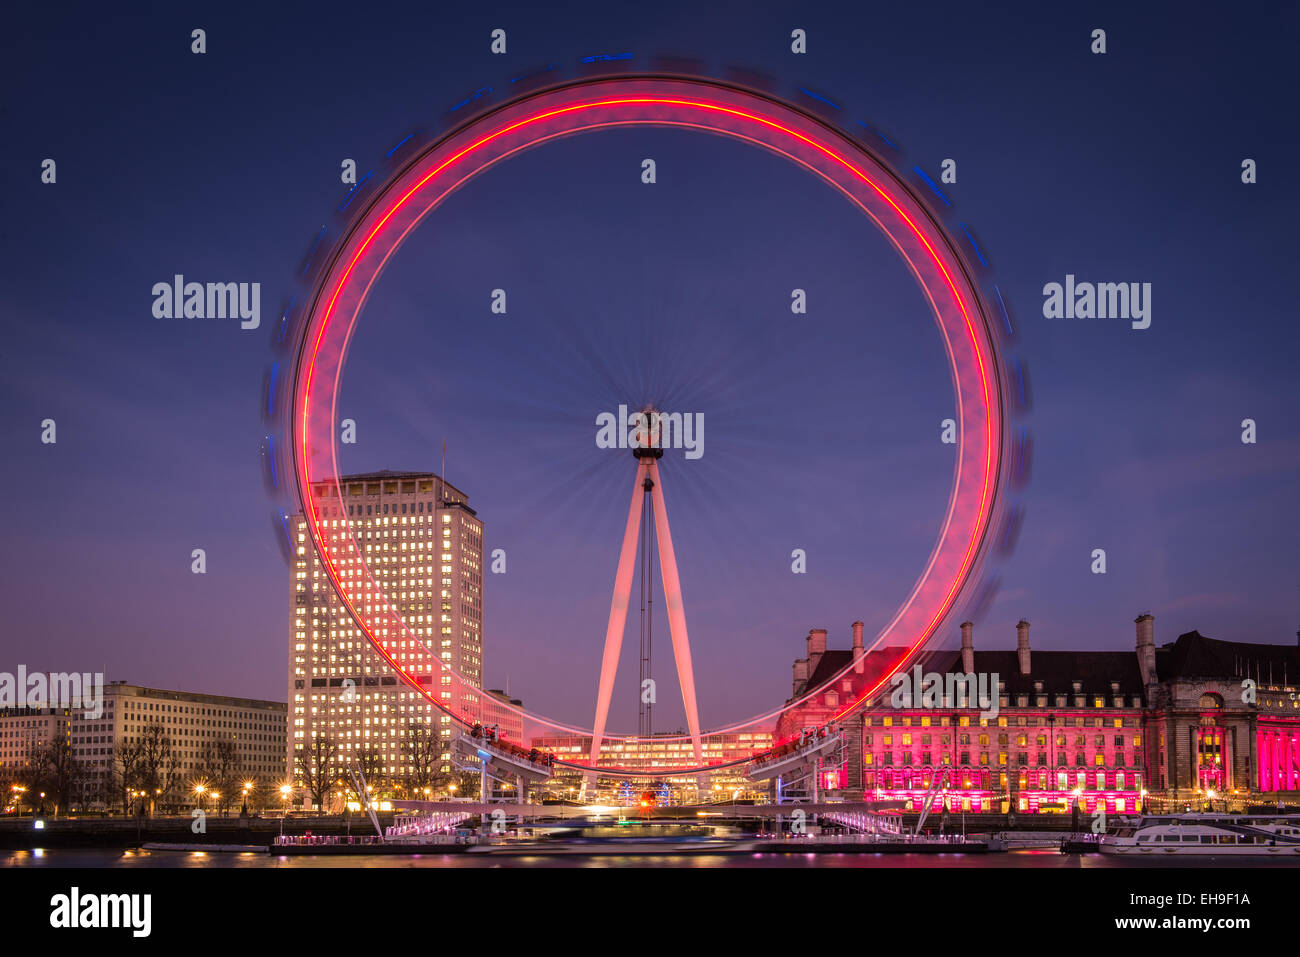 London eye, Londres Imagen De Stock